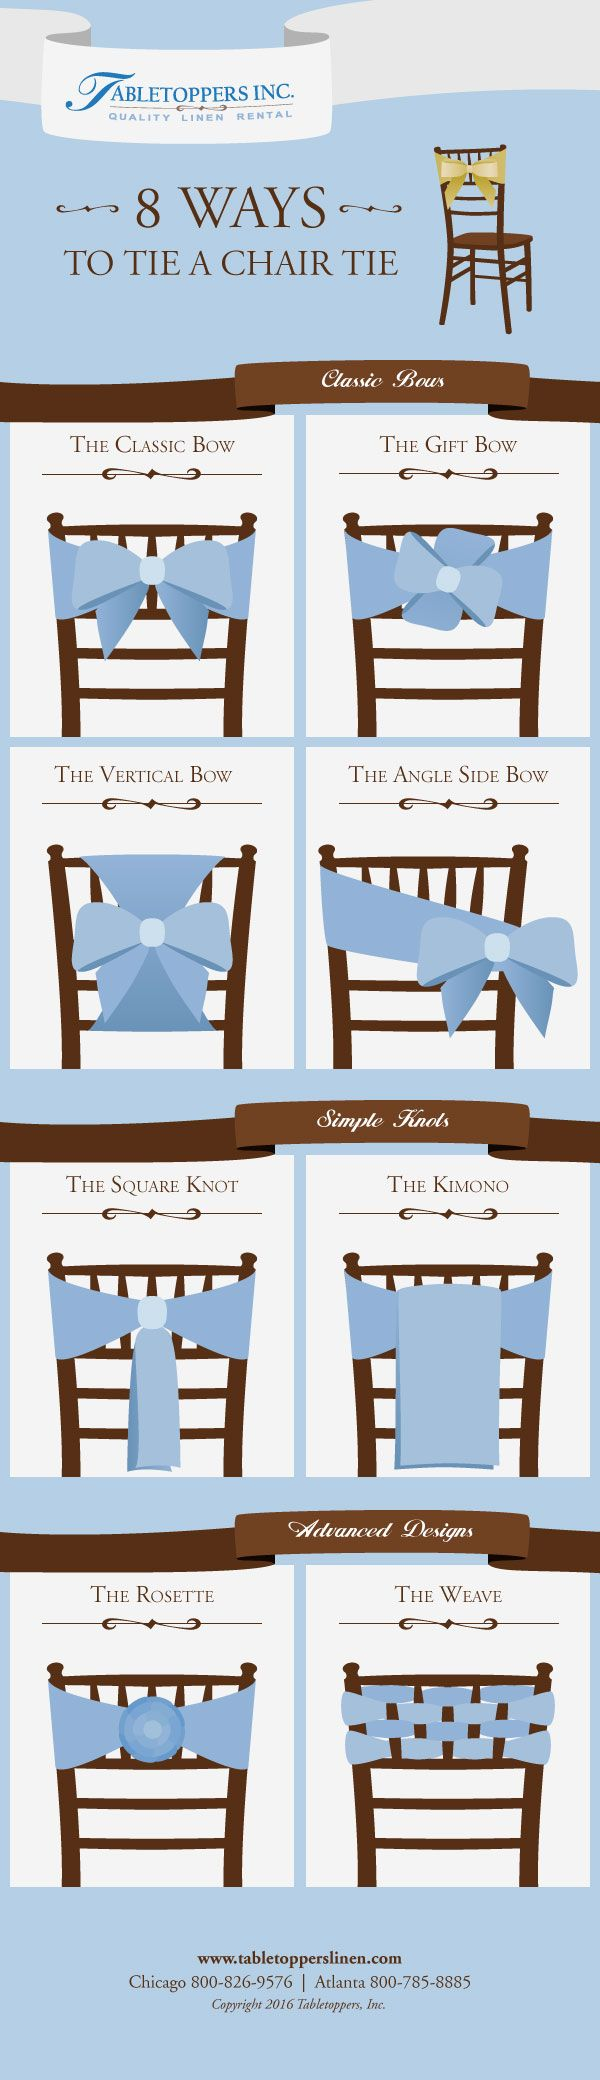 Check out the new Tabletoppers Inc Chair Tie Idea Guide! More tutorials are live…